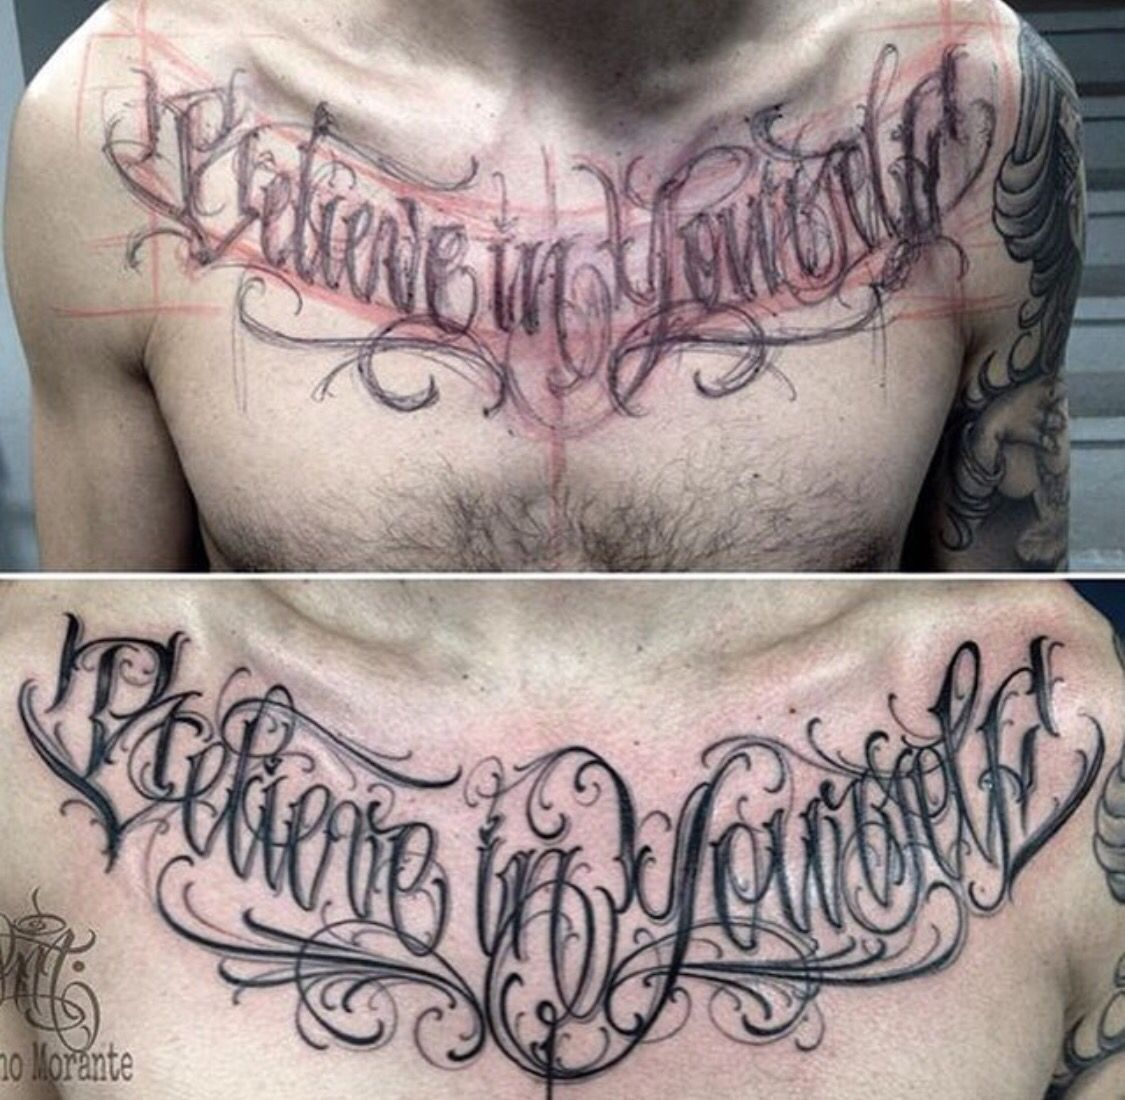 Believe in yourself chest lettering tattoo